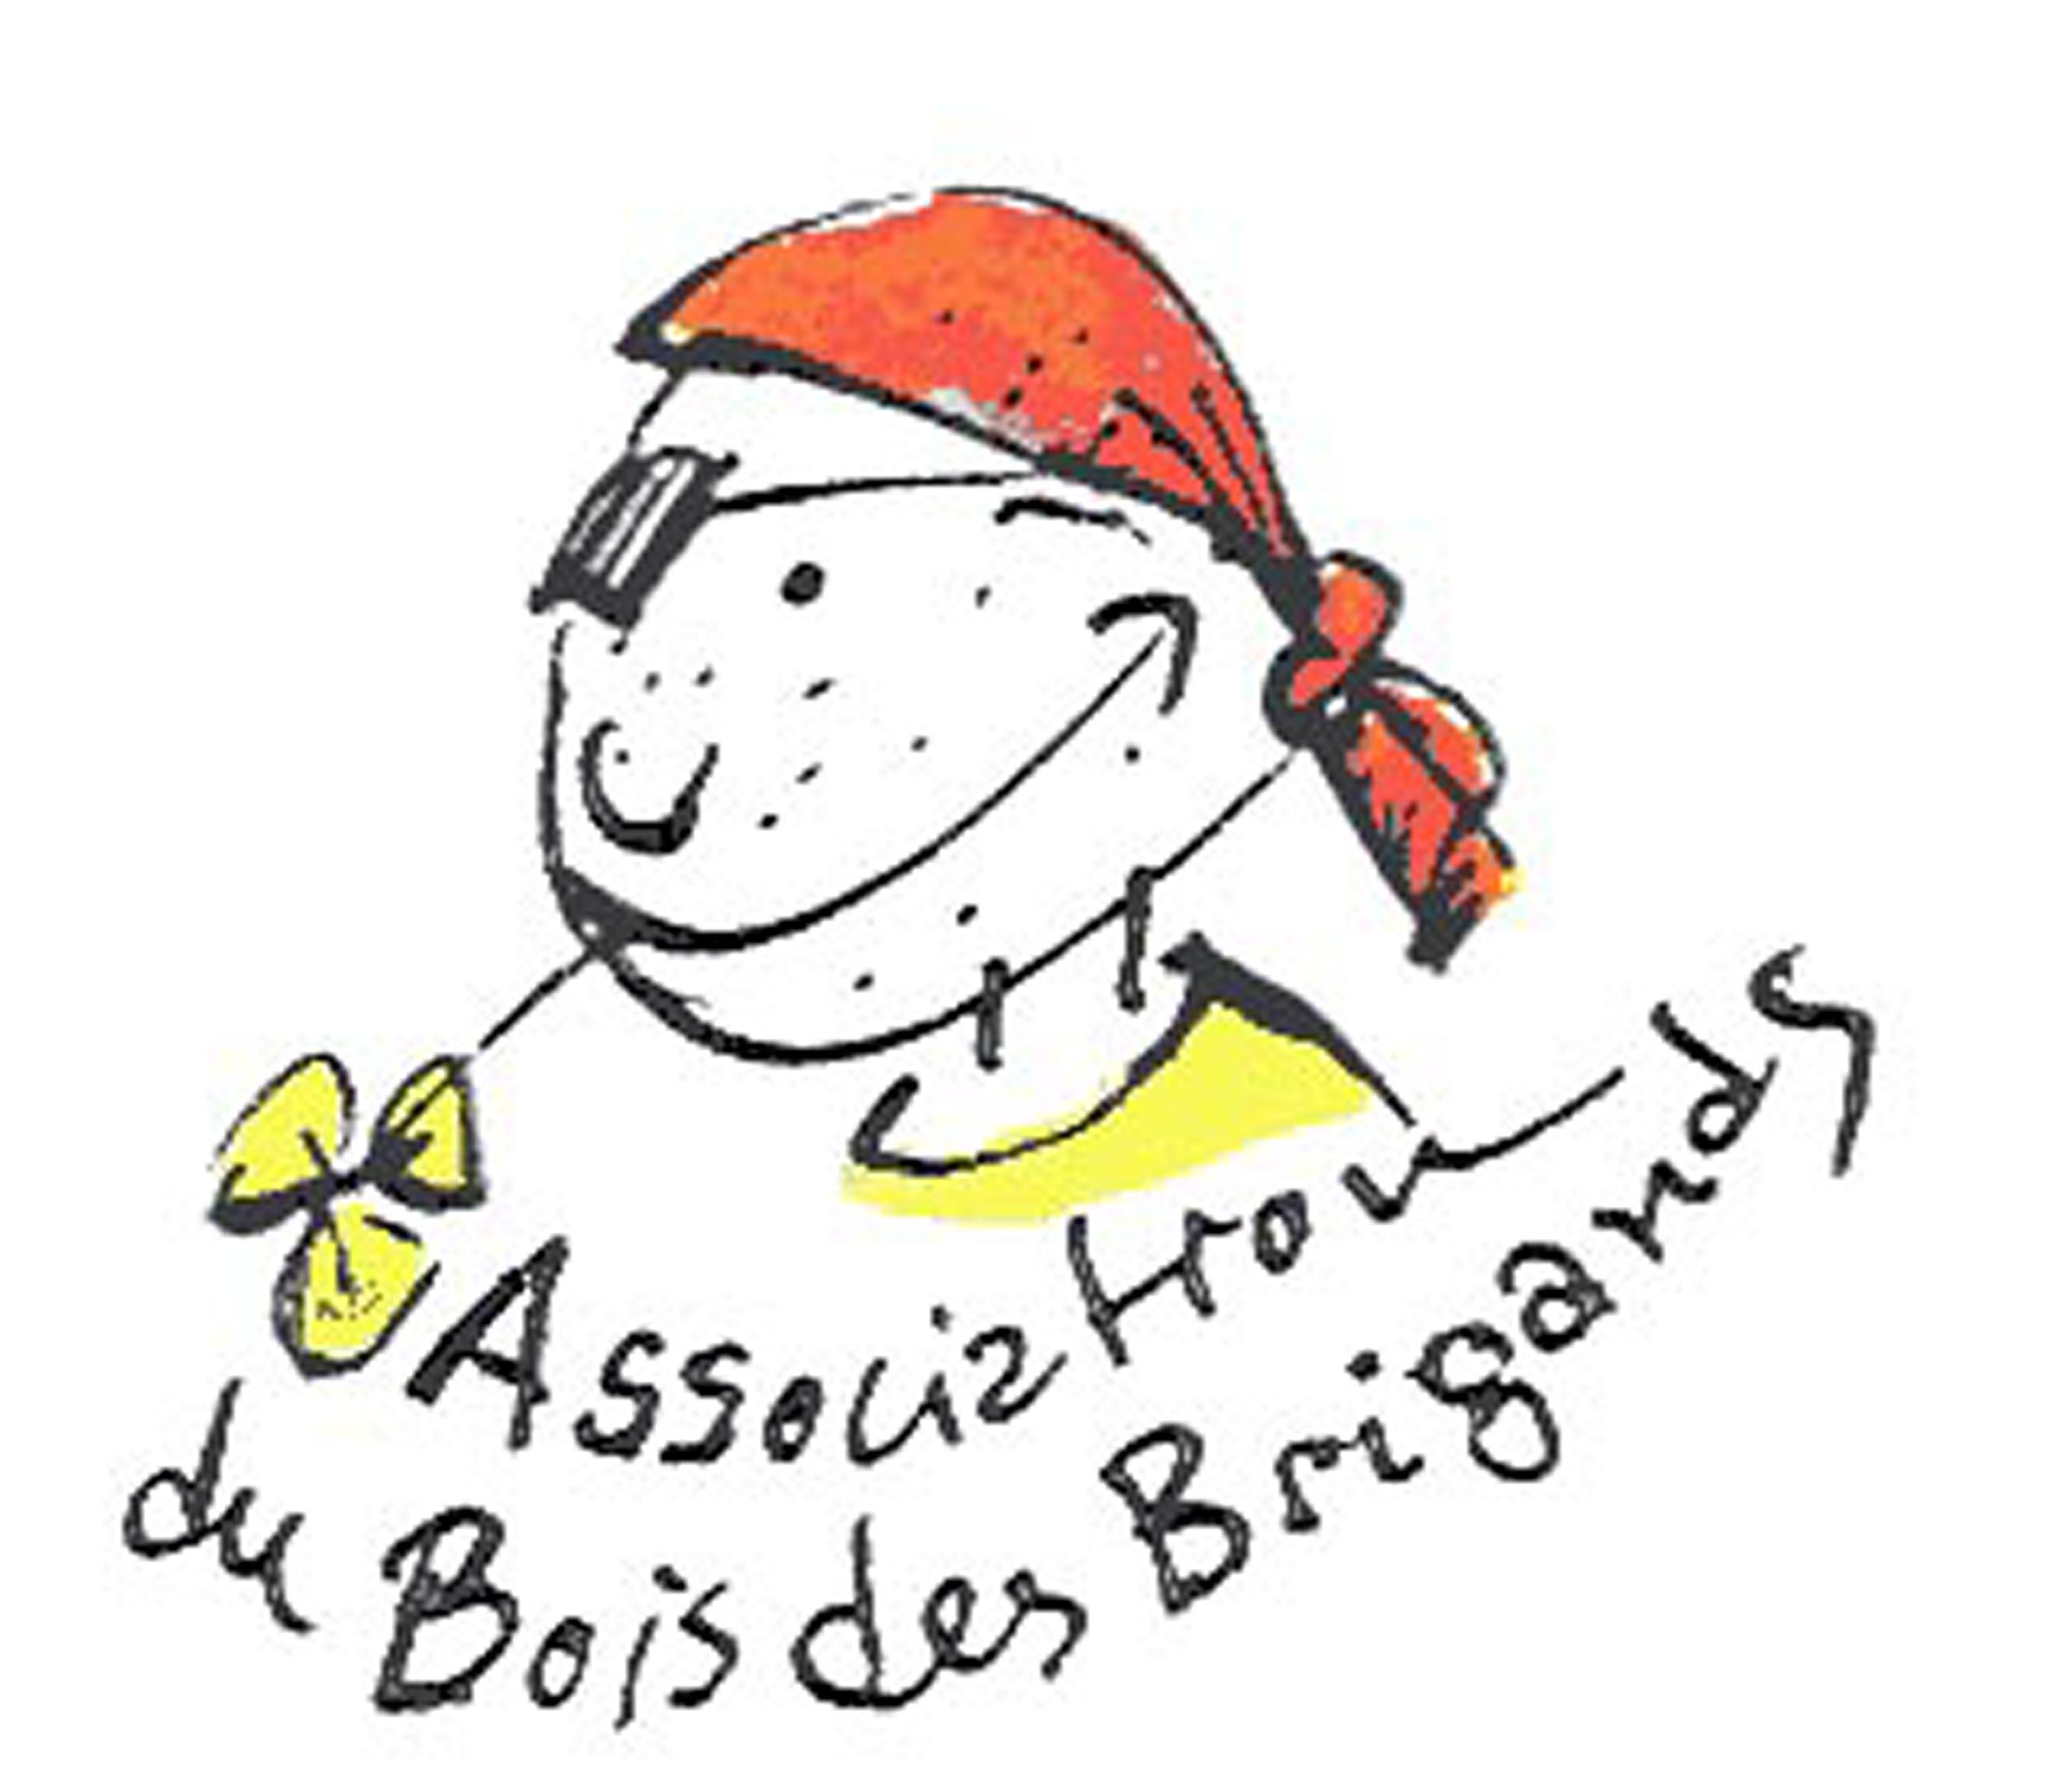 Association du Bois des Brigands